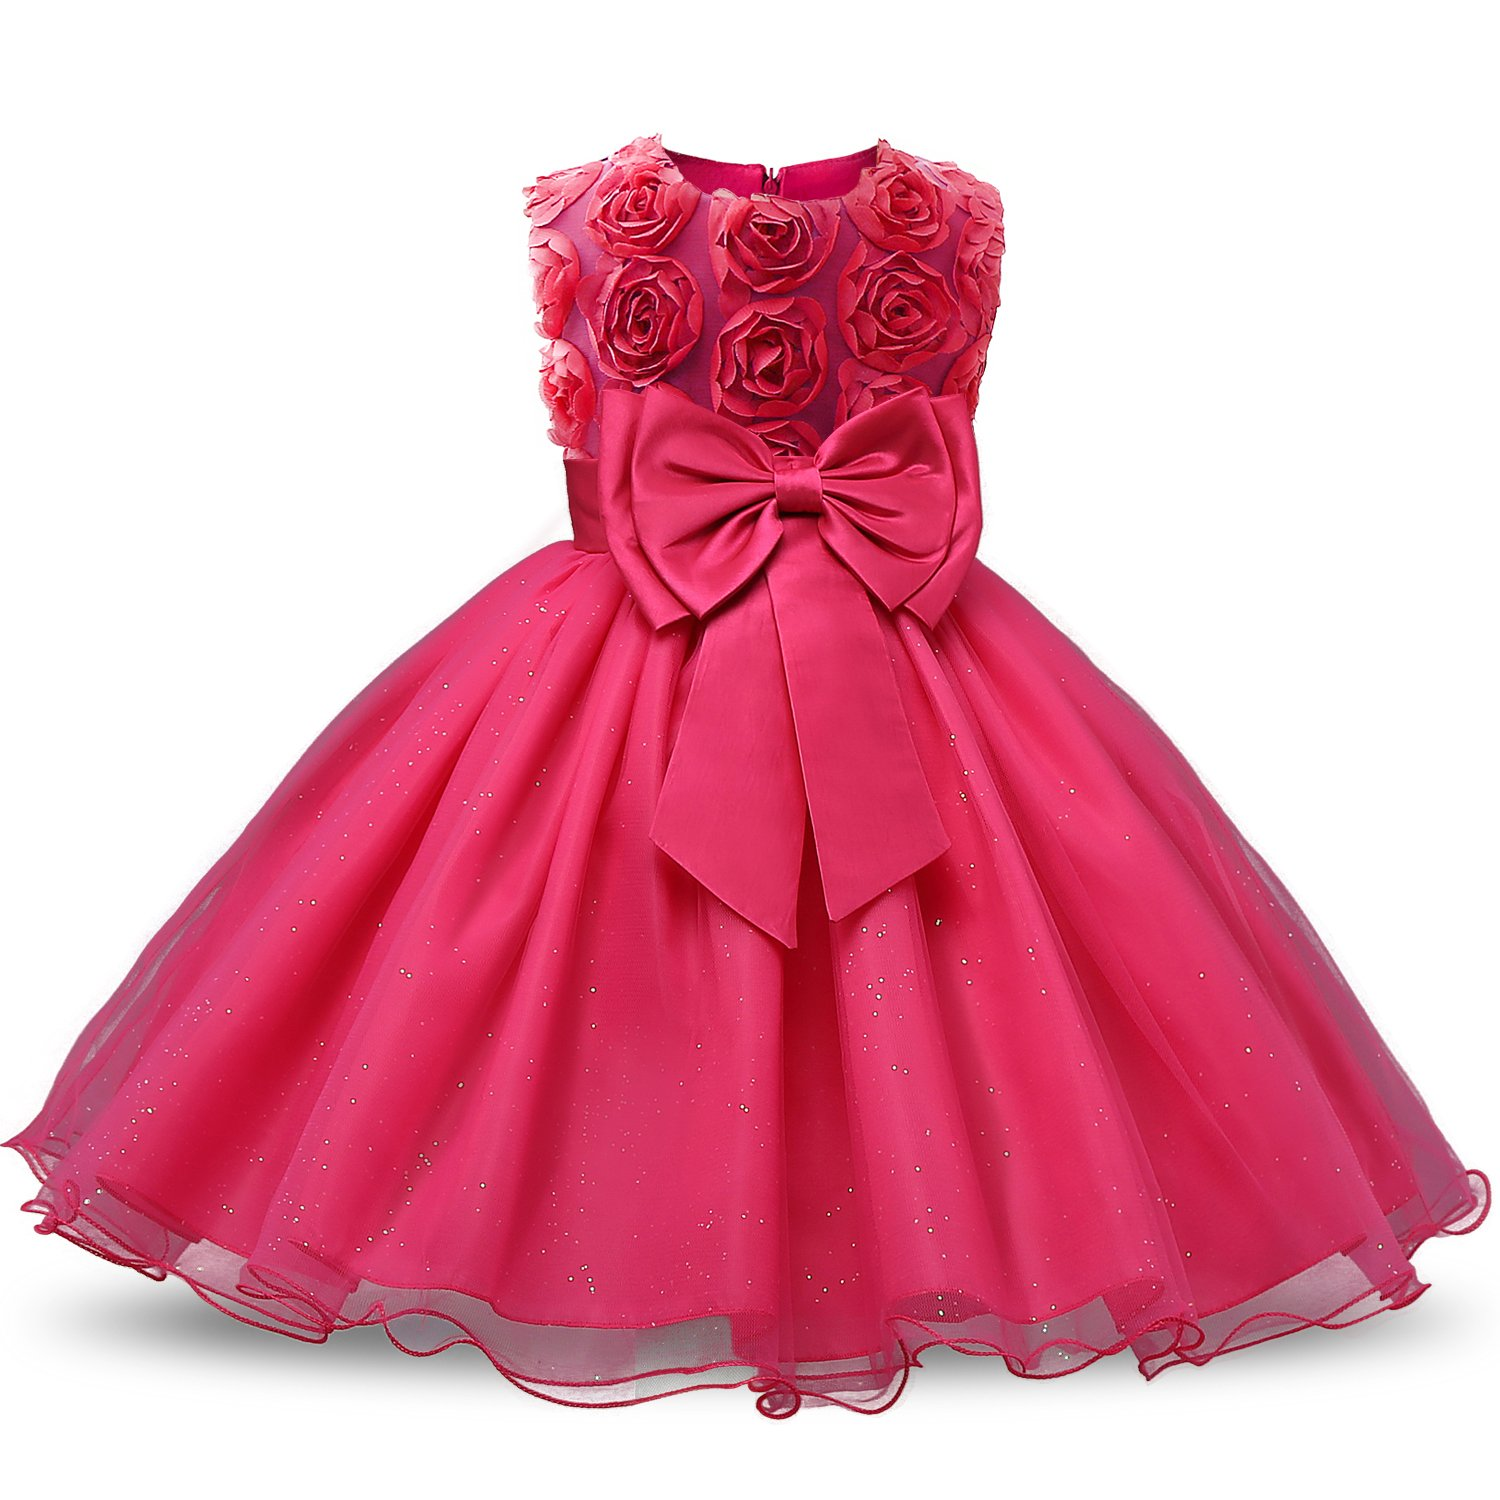 adab64a1f3d NNJXD Girl Sleeveless Lace 3D Flower Tutu Holiday Princess Dresses Size 4-5 Years  Rose